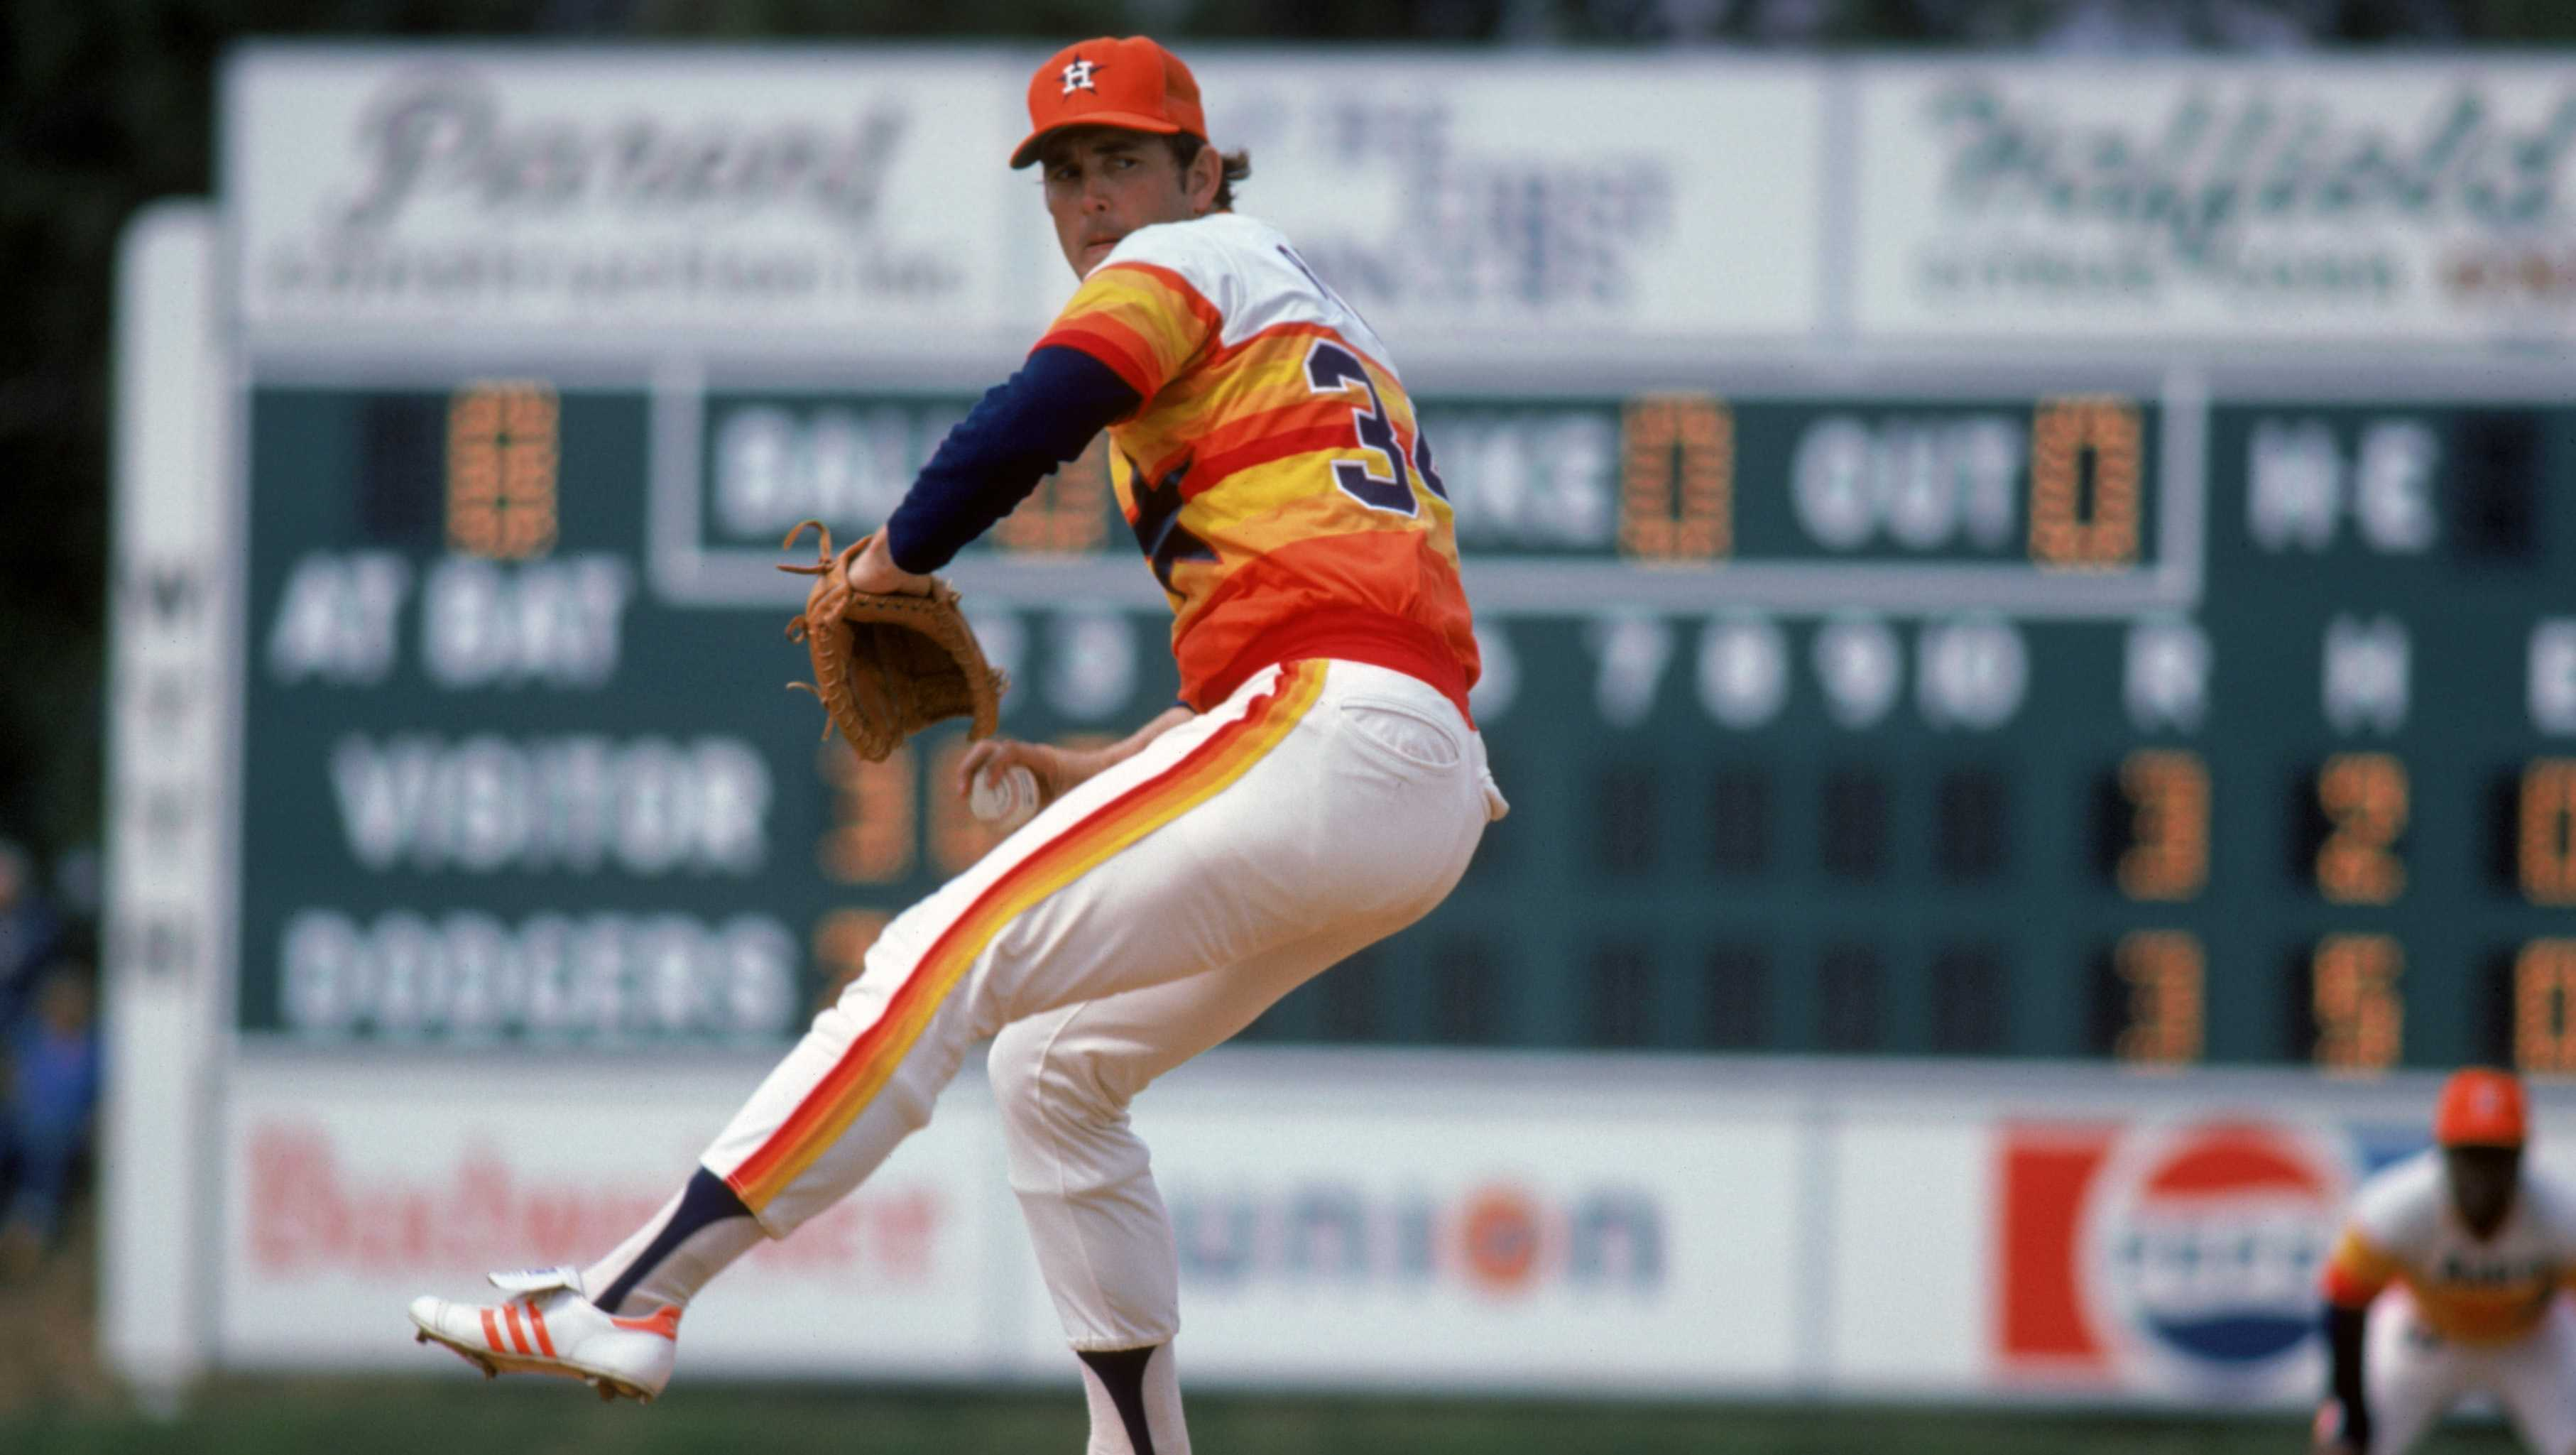 Nolan Ryan #34 of the Houston Astros winds up a pitch during a 1980 season game.